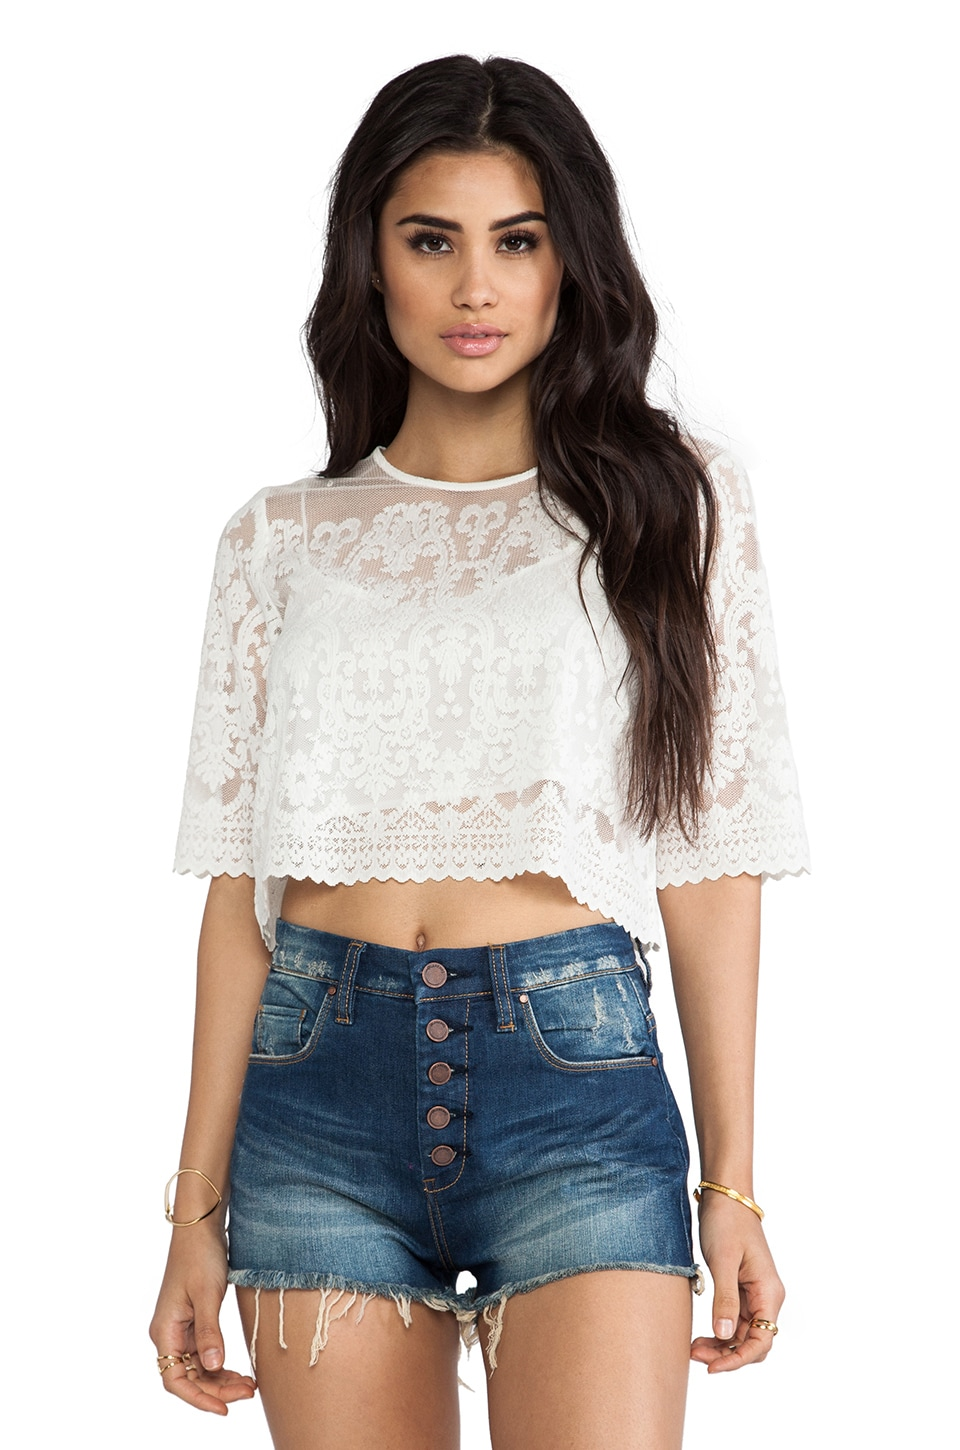 Dolce Vita Zita Top in Snow